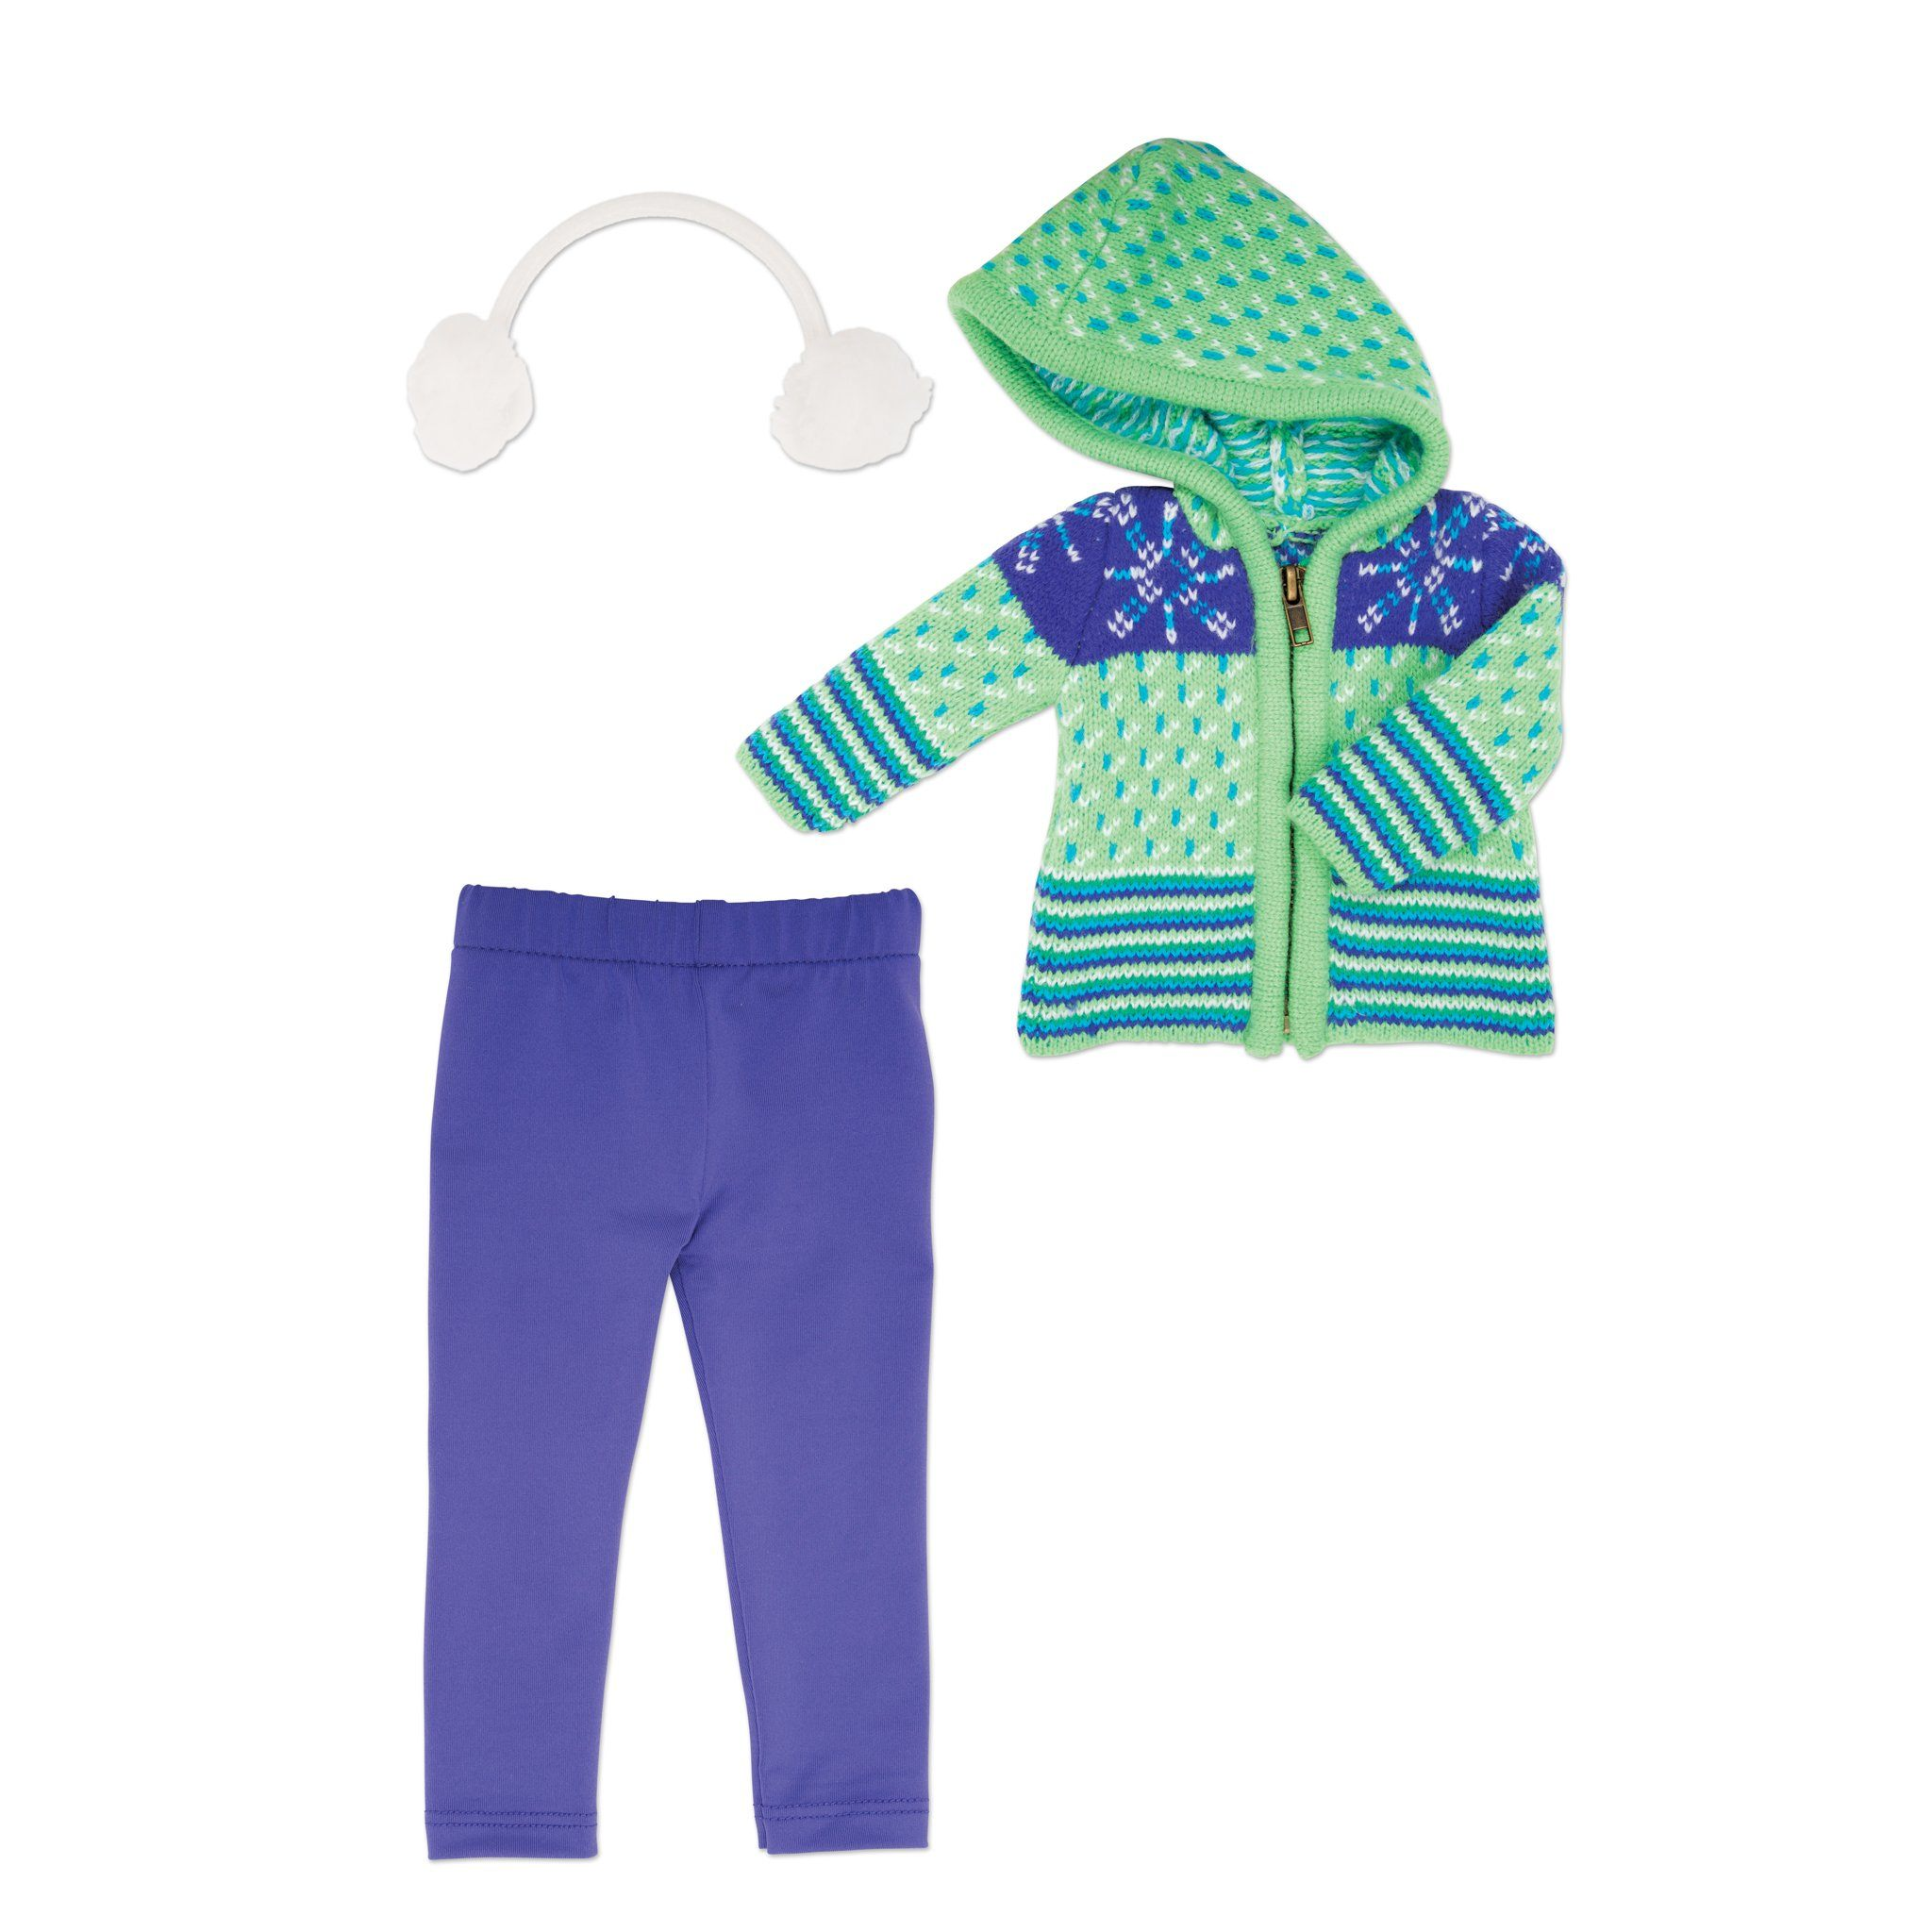 Green and purple zip up hooded sweater, purple tights, and white fluffy earmuffs fits all 18 inch dolls